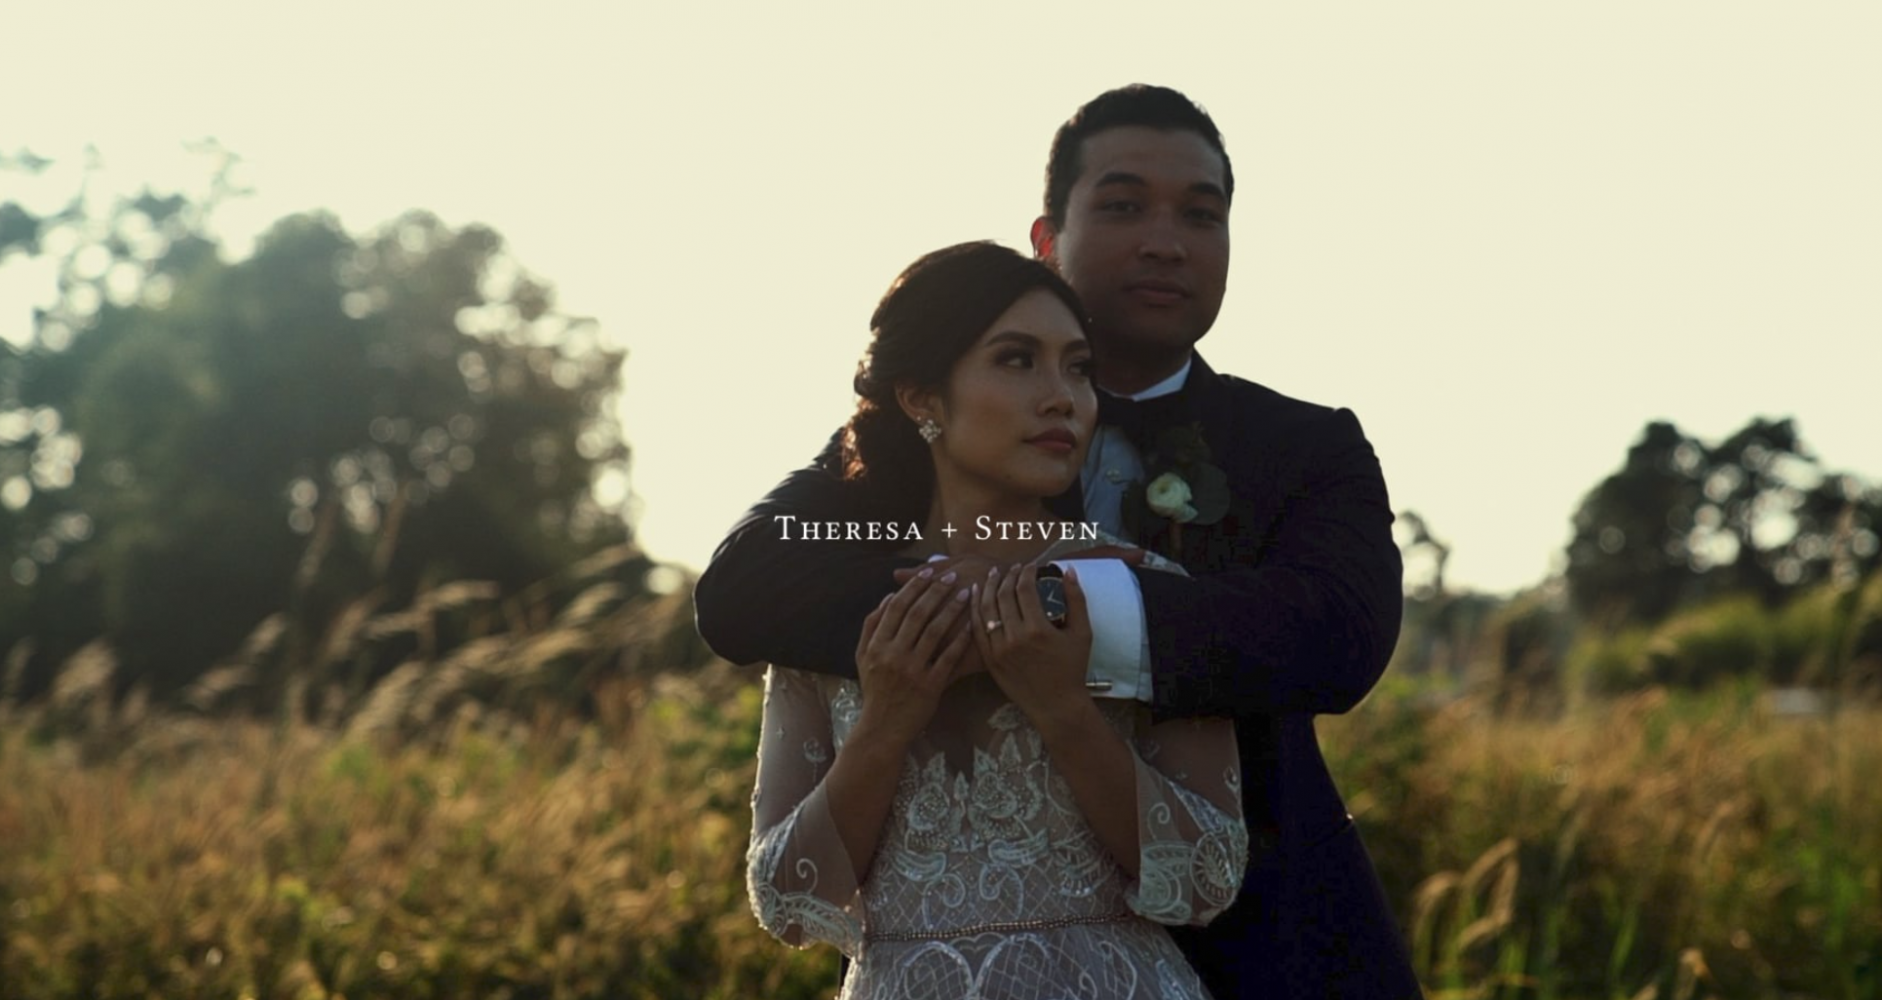 Theresa + Steven | Houston, Texas | Balmorhea Wedding and Events